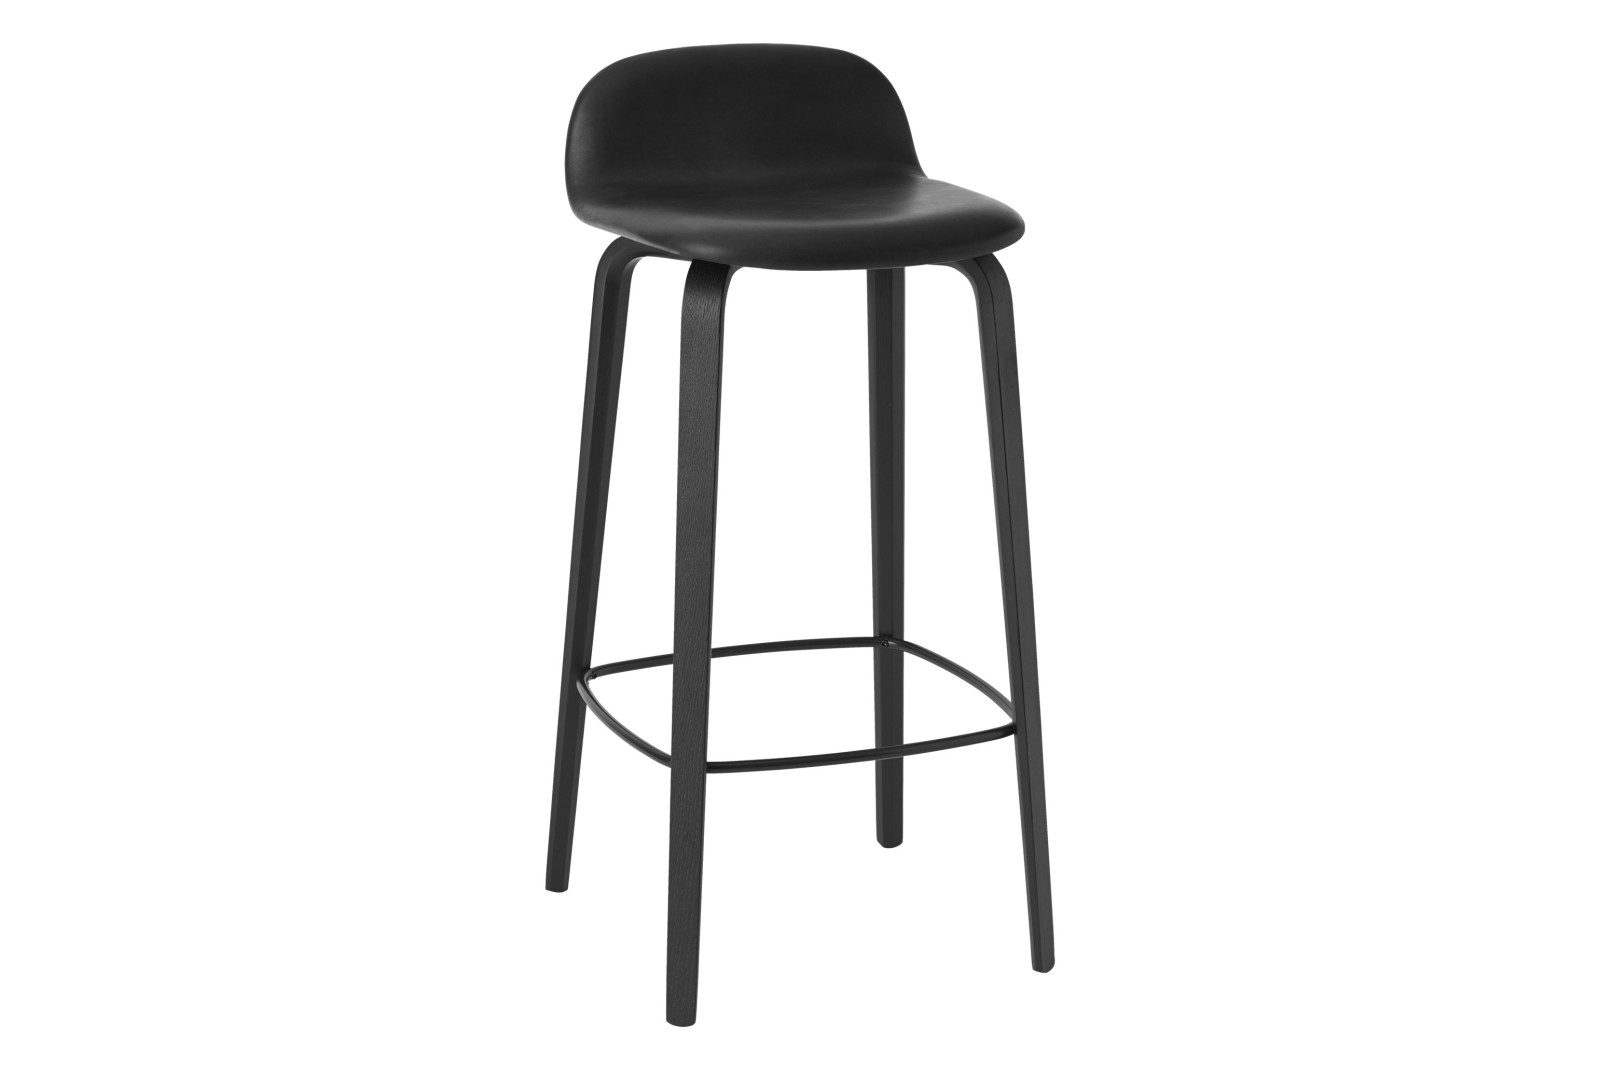 Visu Bar Stool - Upholstered Refine Black High